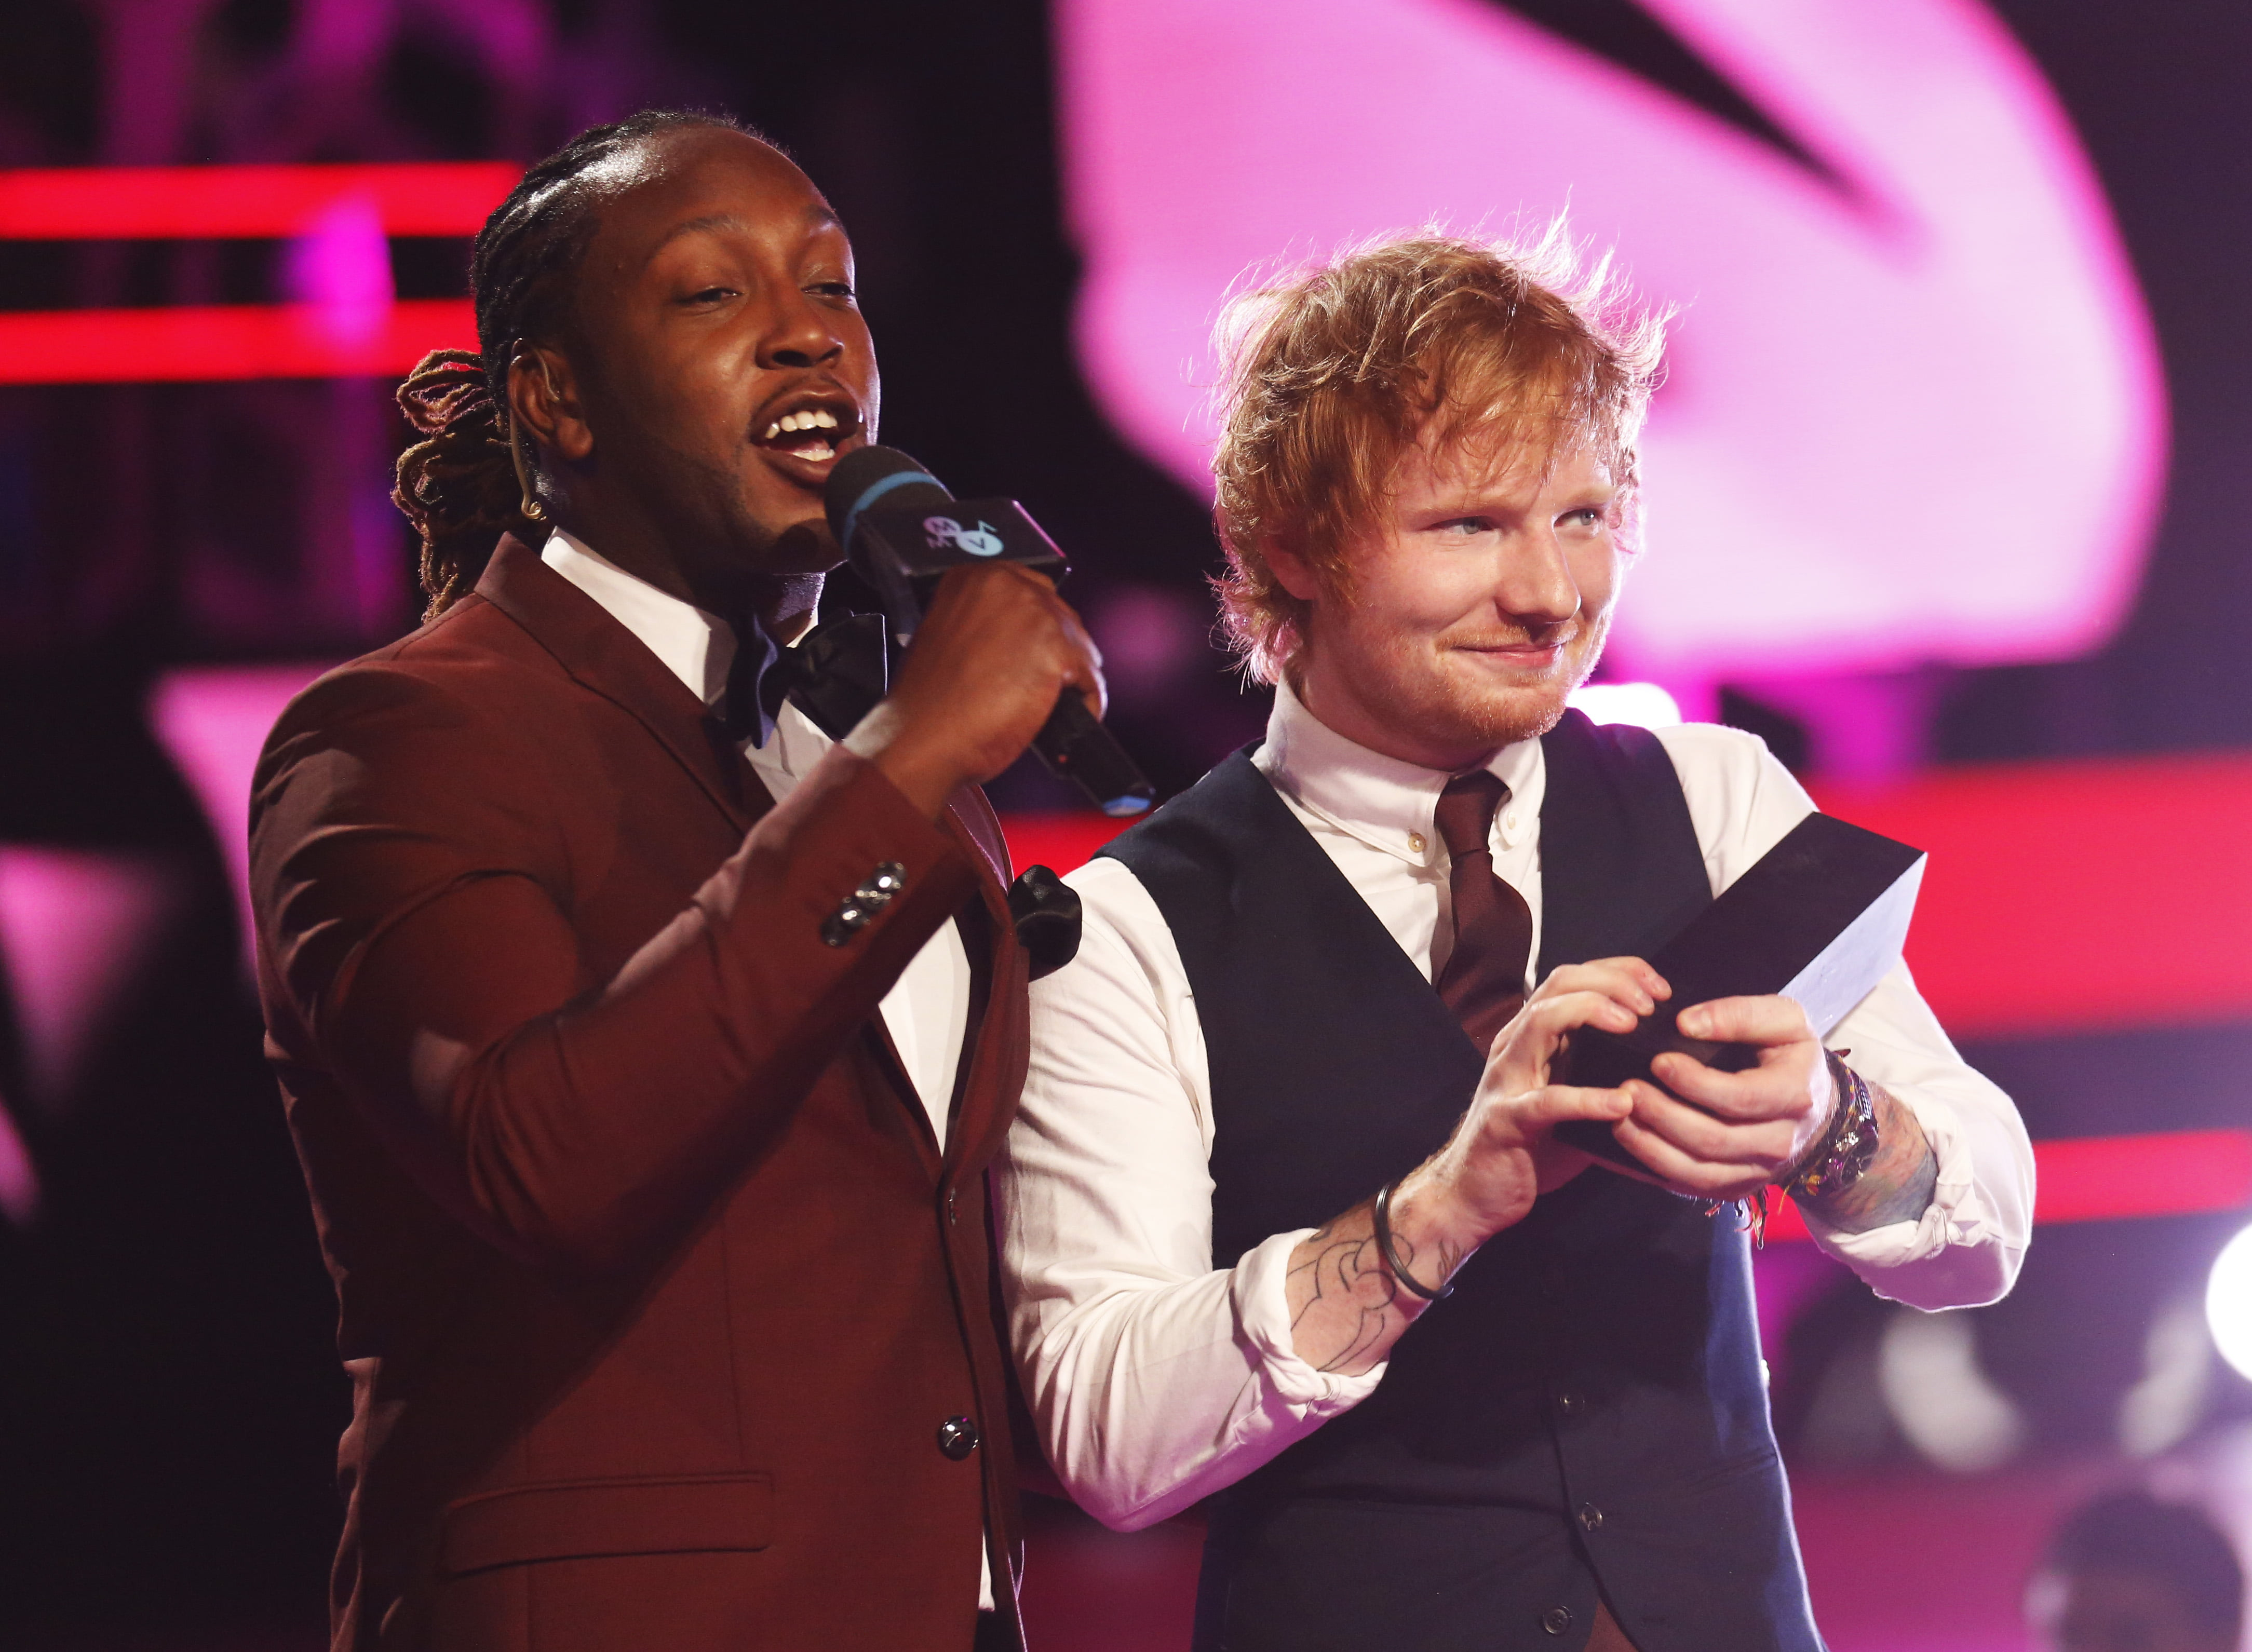 Tyrone Edwards & Ed Sheeran